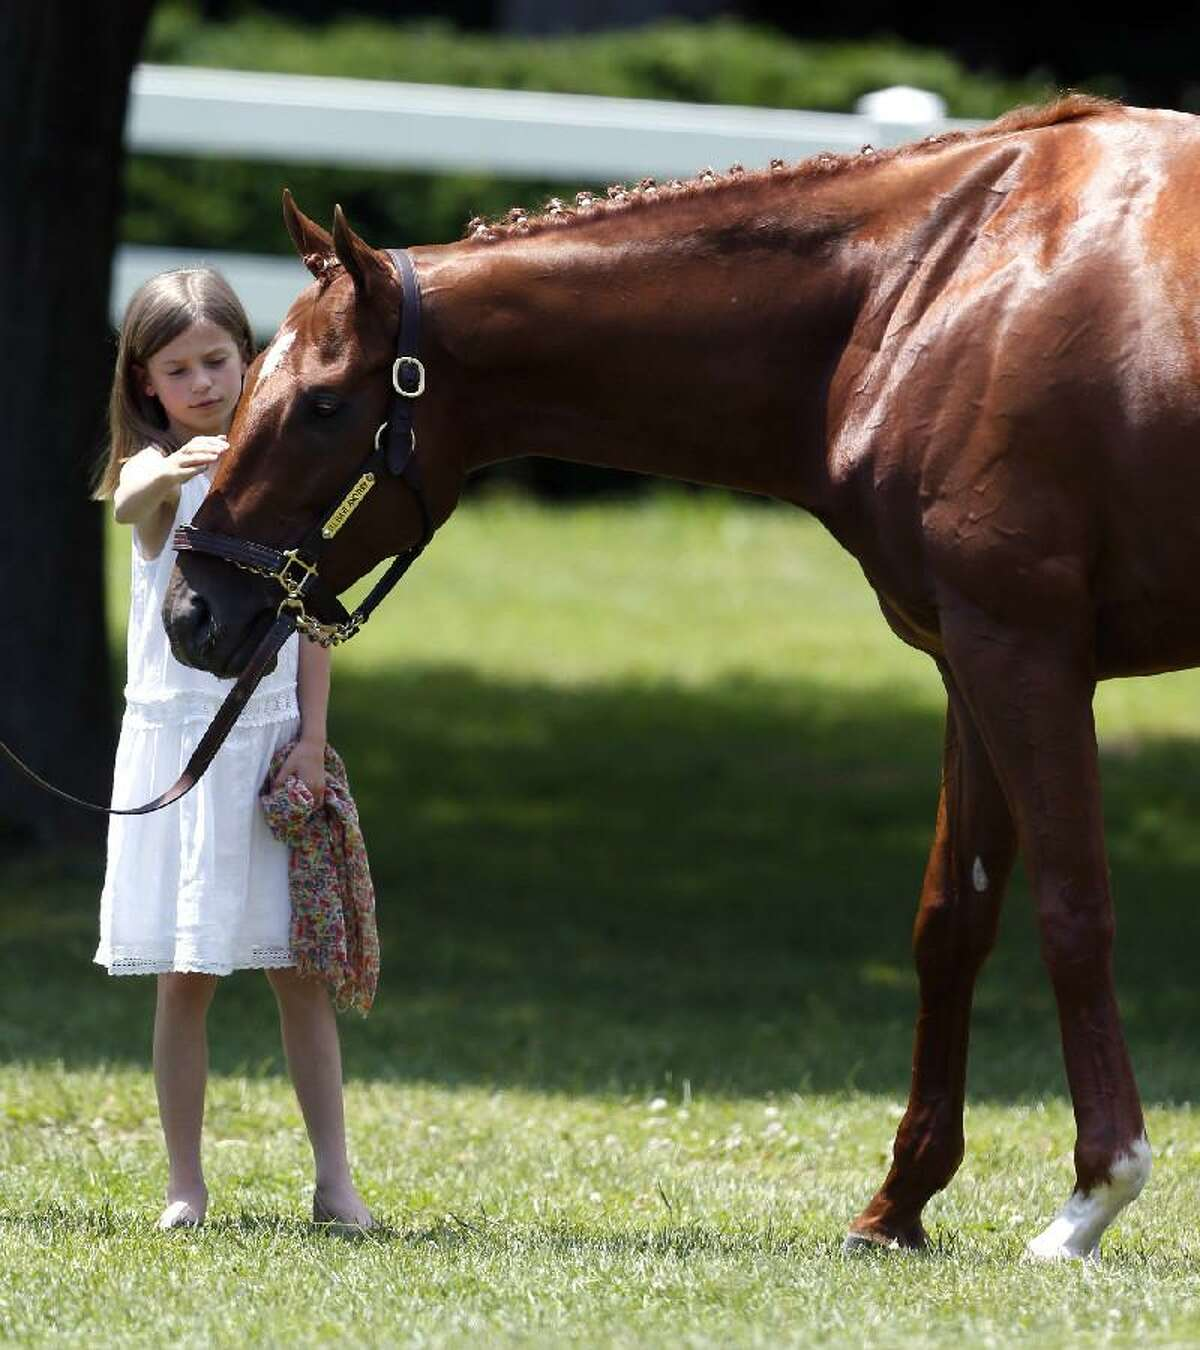 ASSOCIATED PRESS Eliza McCalmont pets Kentucky Derby and Preakness winner I'll Have Another during a news conference at Belmont Park in Elmont, N.Y., on Friday. I'll Have Another's bid for a Triple Crown ended with the shocking news that the colt was out of the Belmont Stakes due to a swollen left front tendon. The Belmont Stakes horse race is today.